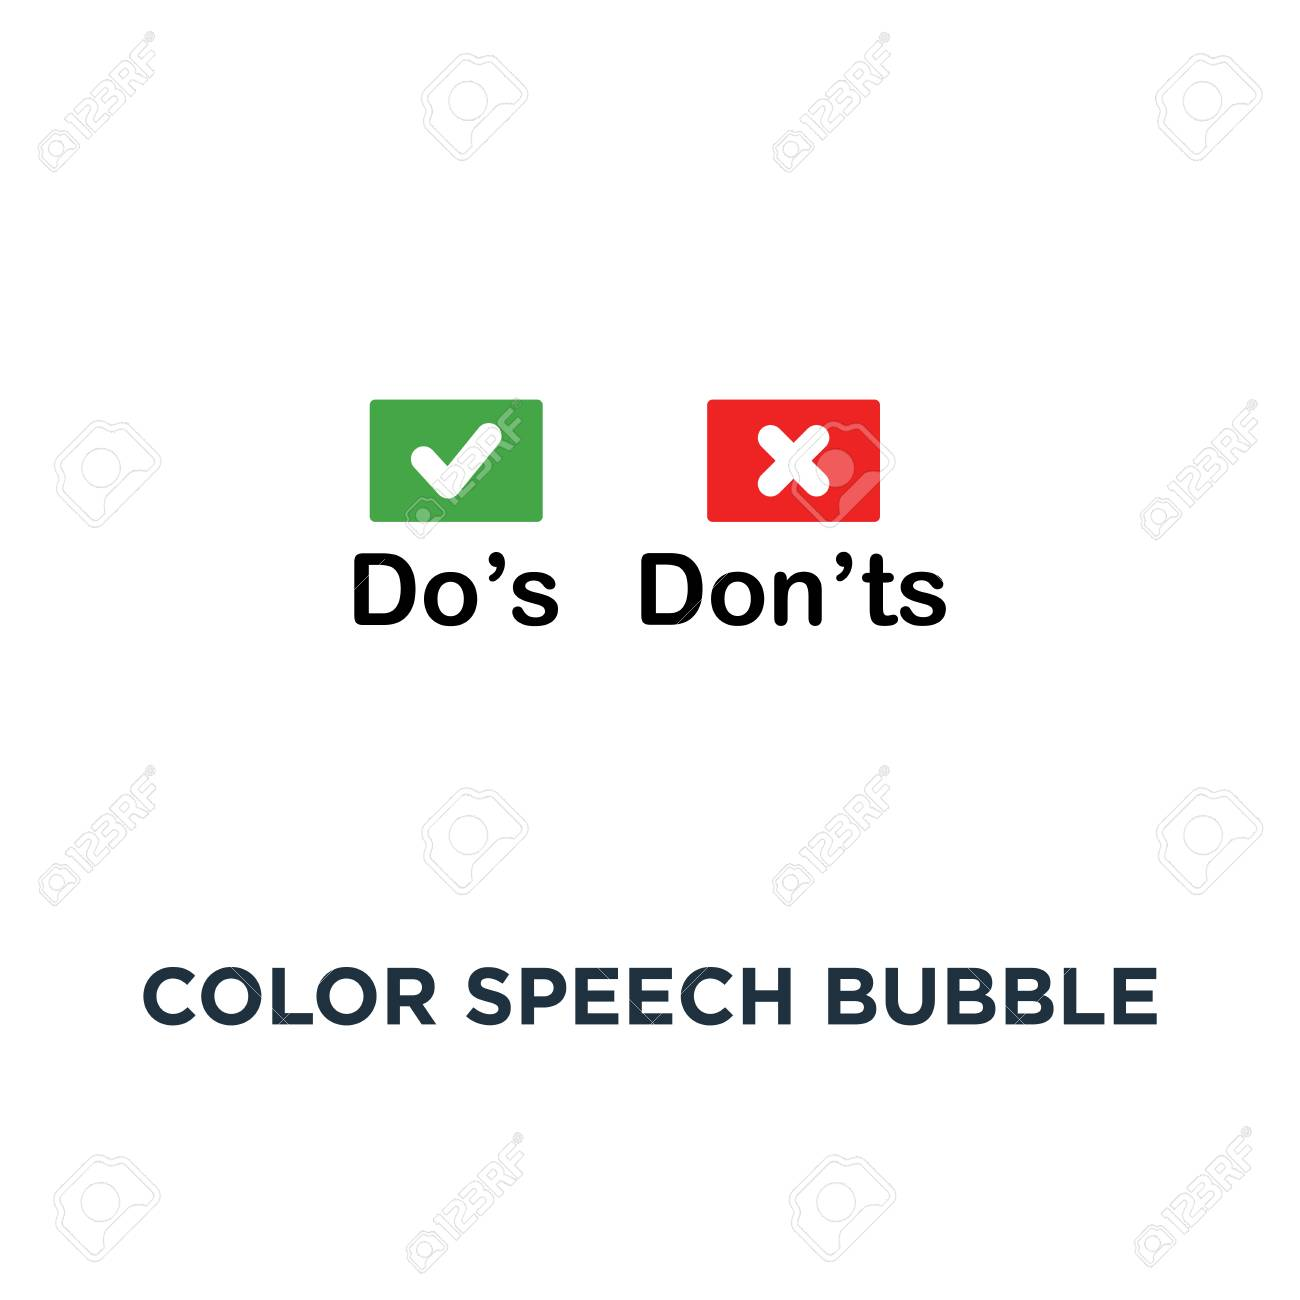 color speech bubble like dos and donts icon symbol of checklist